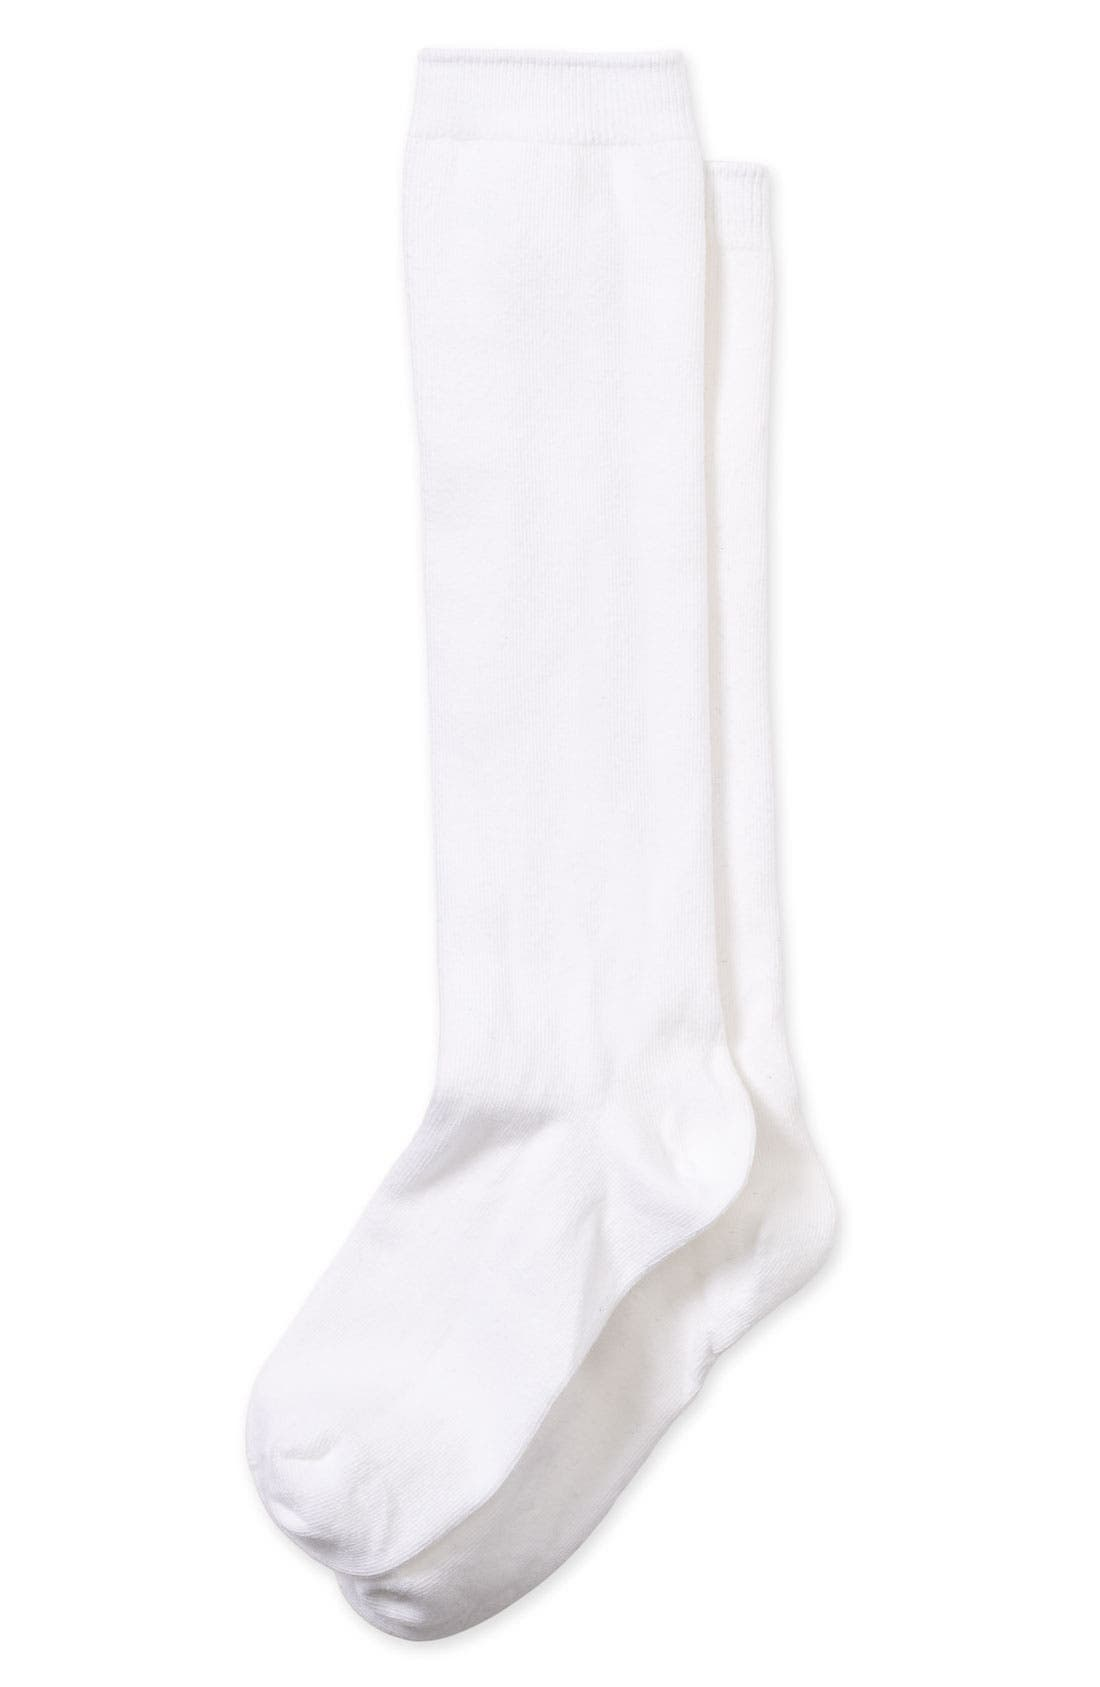 Alternate Image 1 Selected - Nordstrom Knee High Socks (Little Girls & Big Girls)